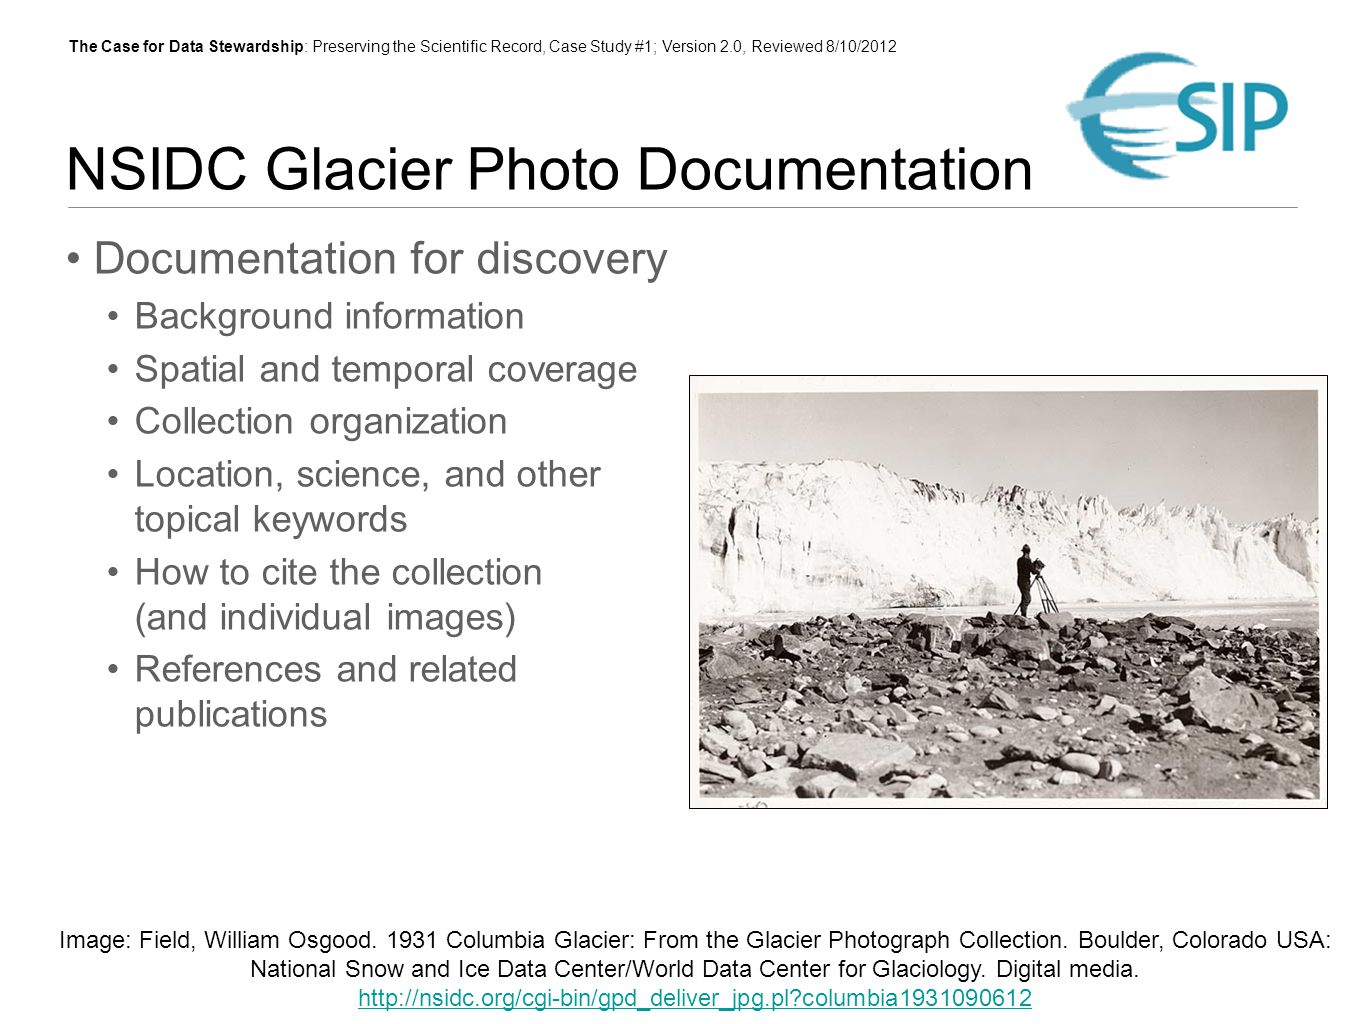 The Case for Data Stewardship: Preserving the Scientific Record, Case Study #1; Version 2.0, Reviewed 8/10/2012 NSIDC Glacier Photo Documentation Documentation for discovery Background information Spatial and temporal coverage Collection organization Location, science, and other topical keywords How to cite the collection (and individual images) References and related publications Image: Field, William Osgood.